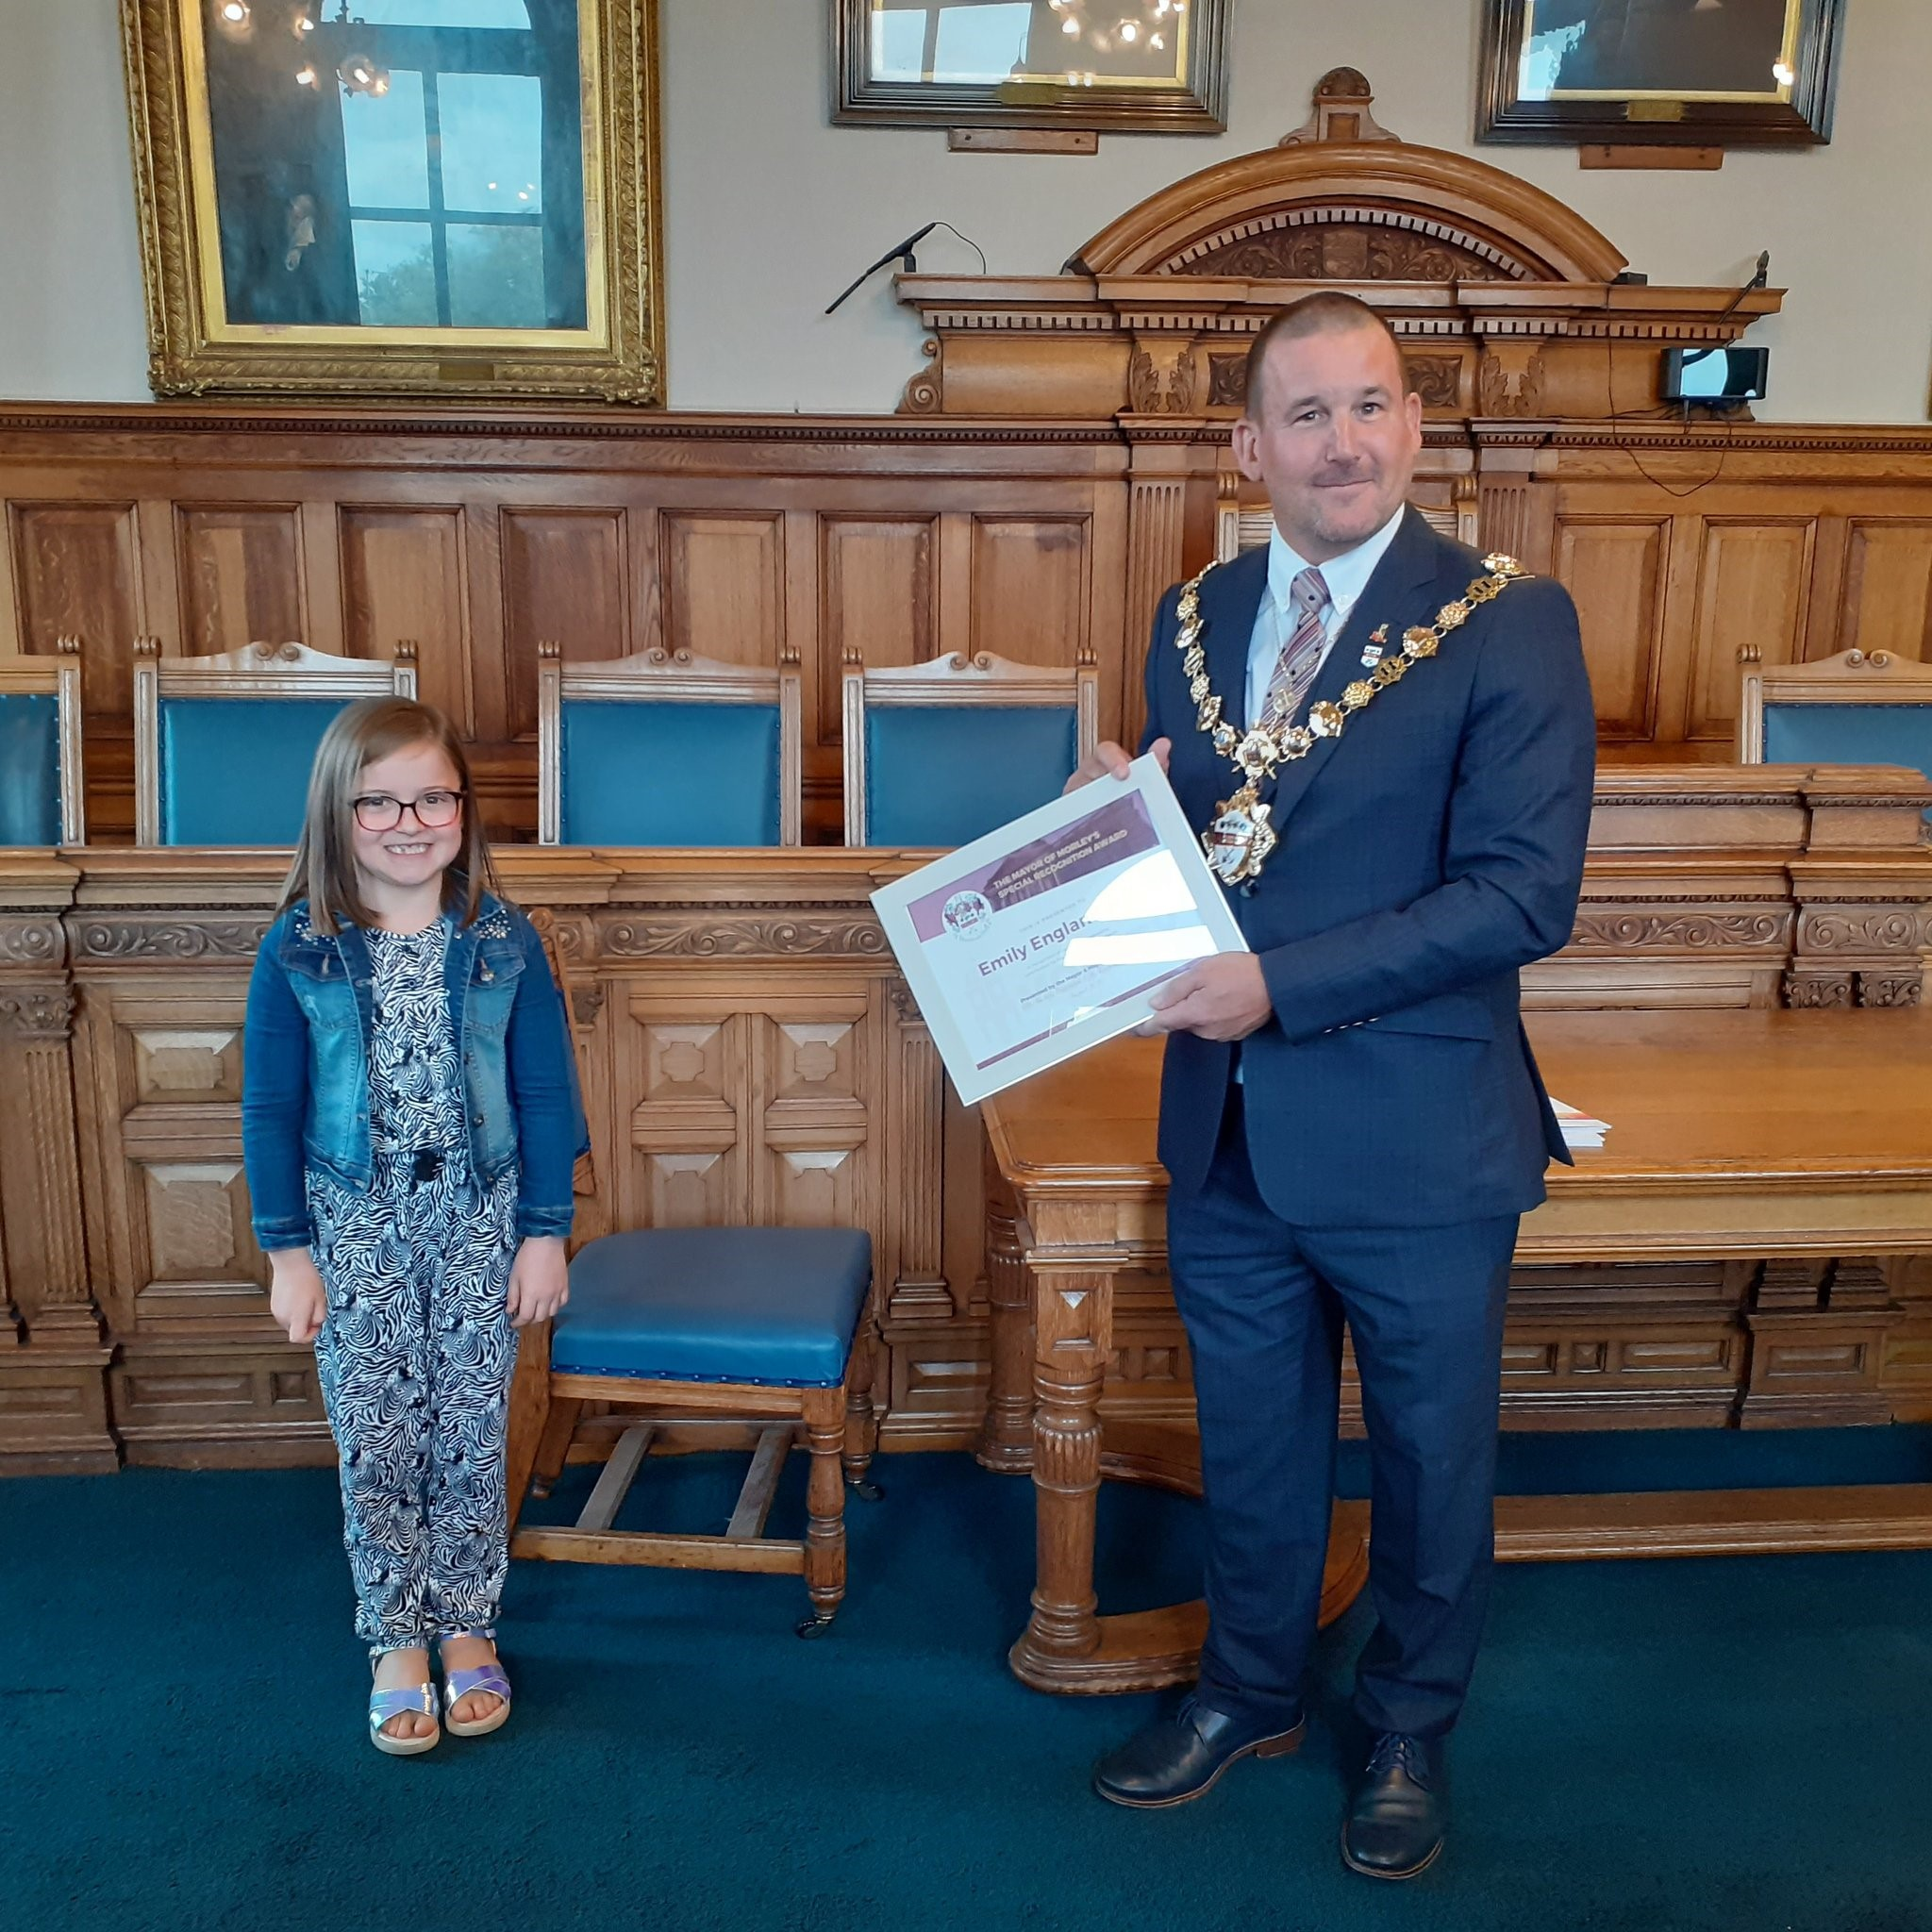 Seven year old Emily honoured with Special Achievement Award from Mayor of Morley for fundraising efforts